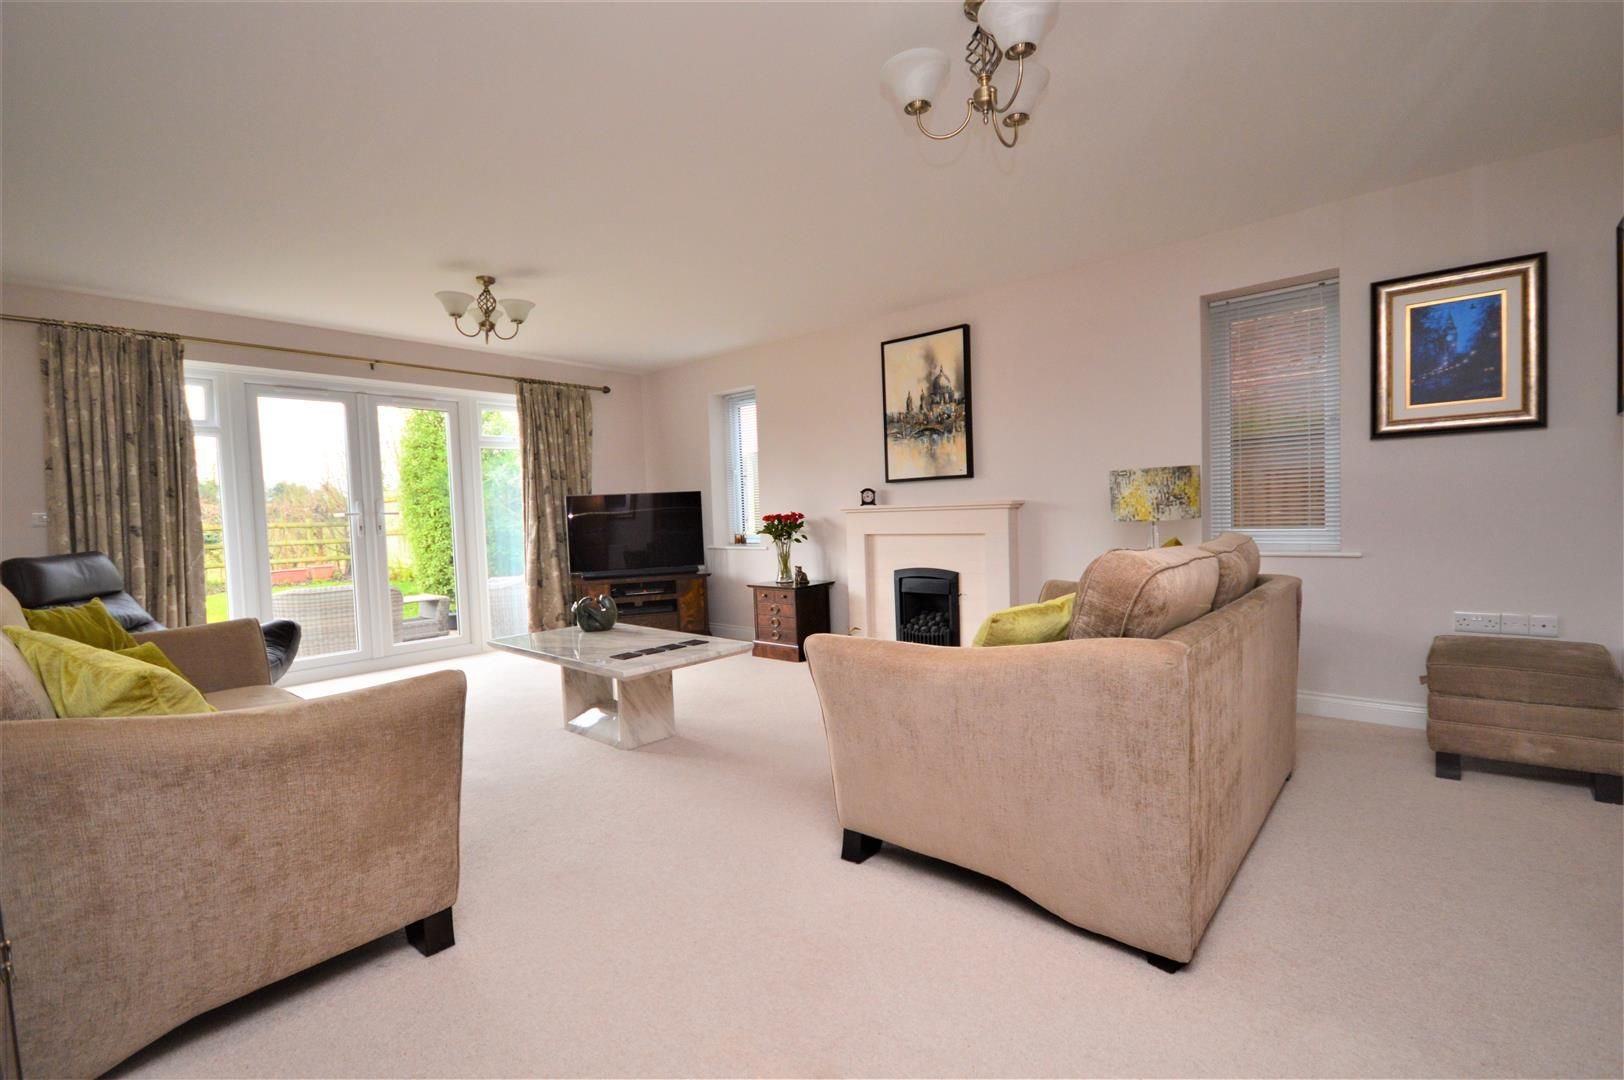 4 bed detached for sale in Wellington  - Property Image 6